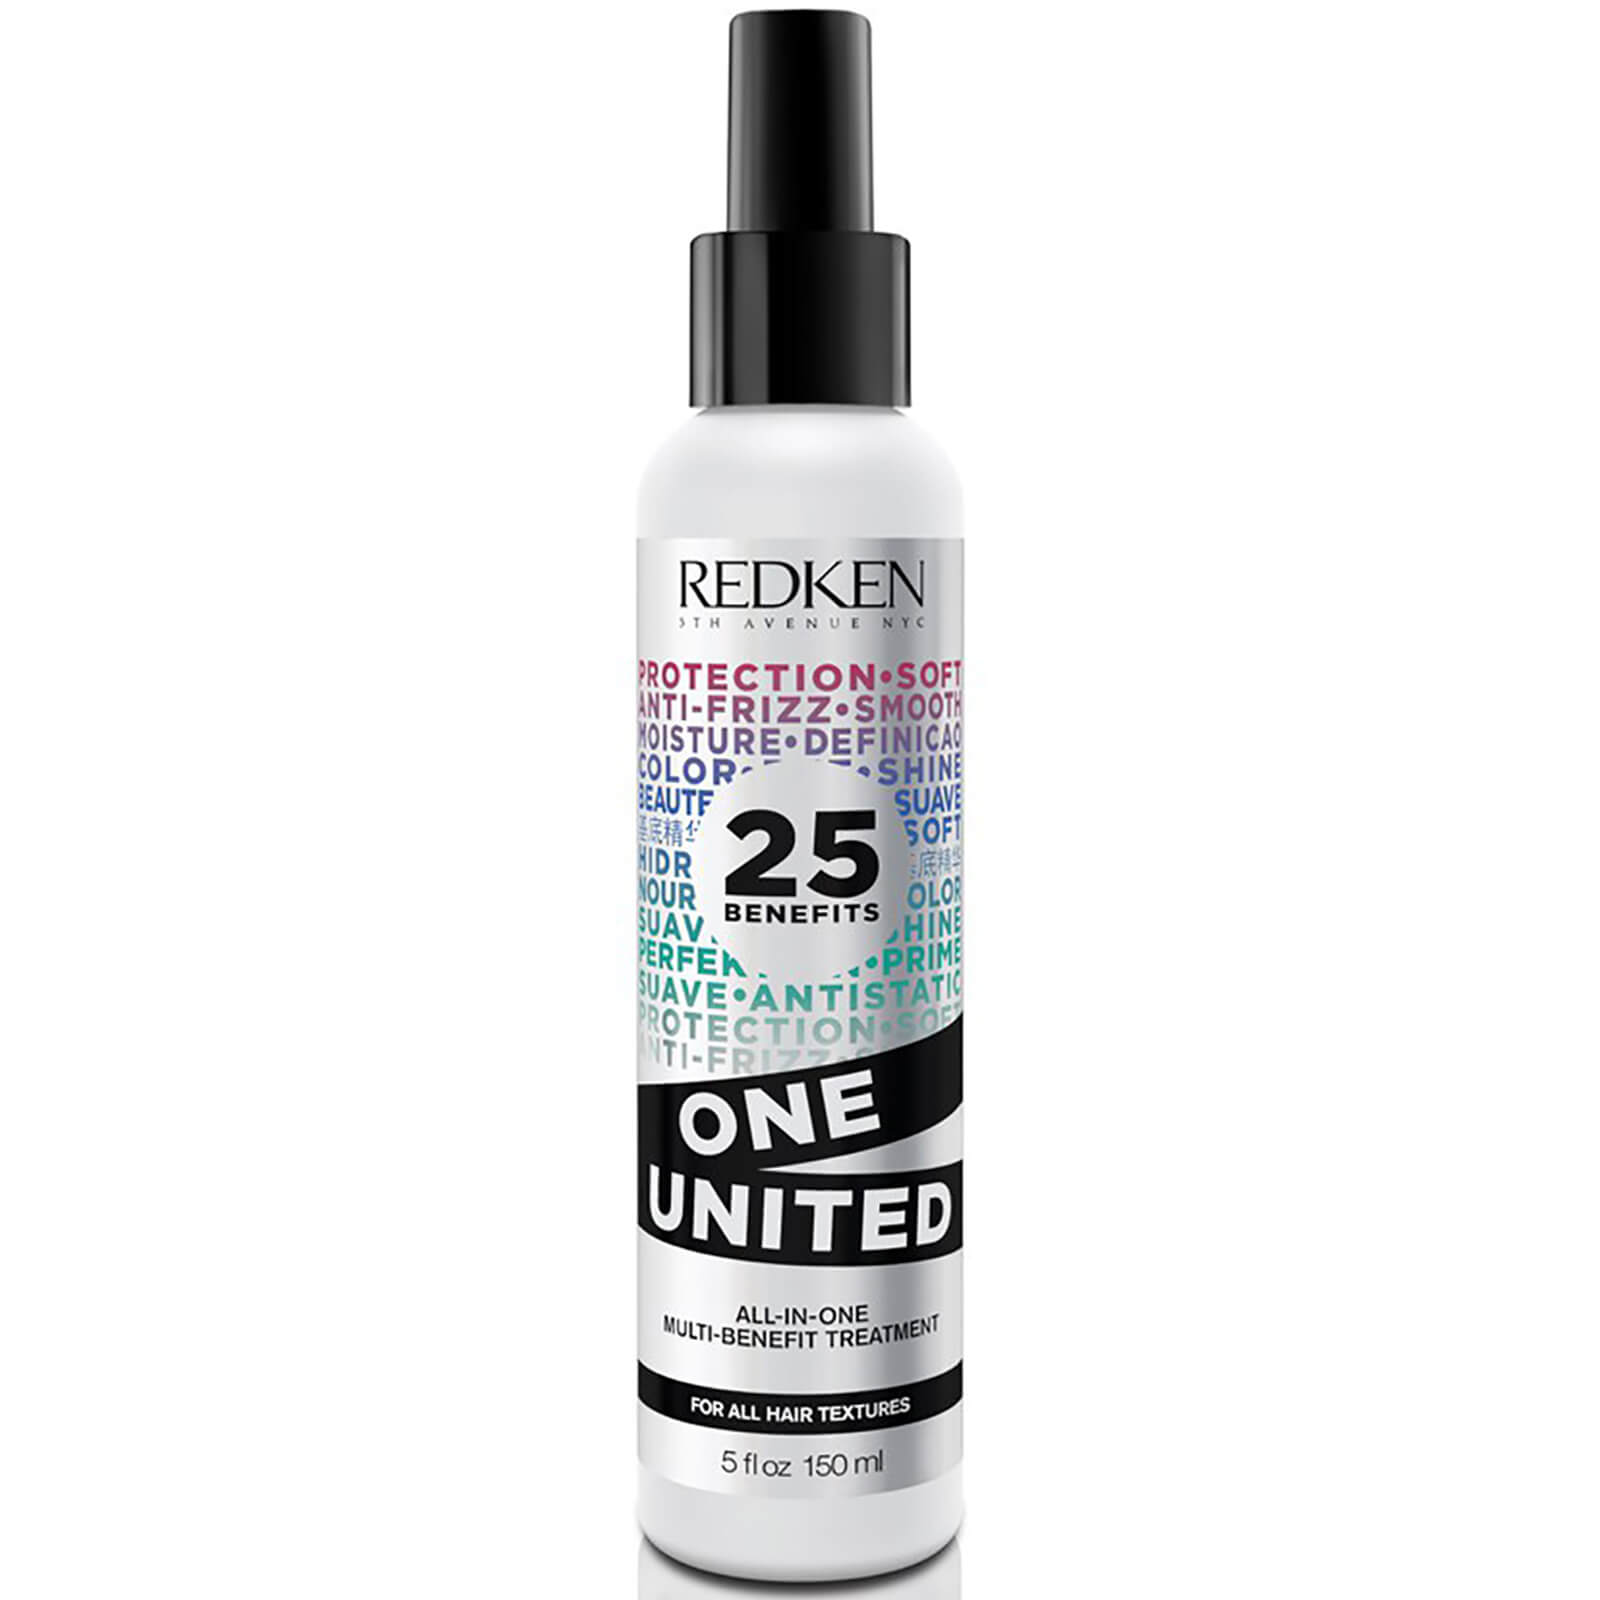 Redken One United Treatment